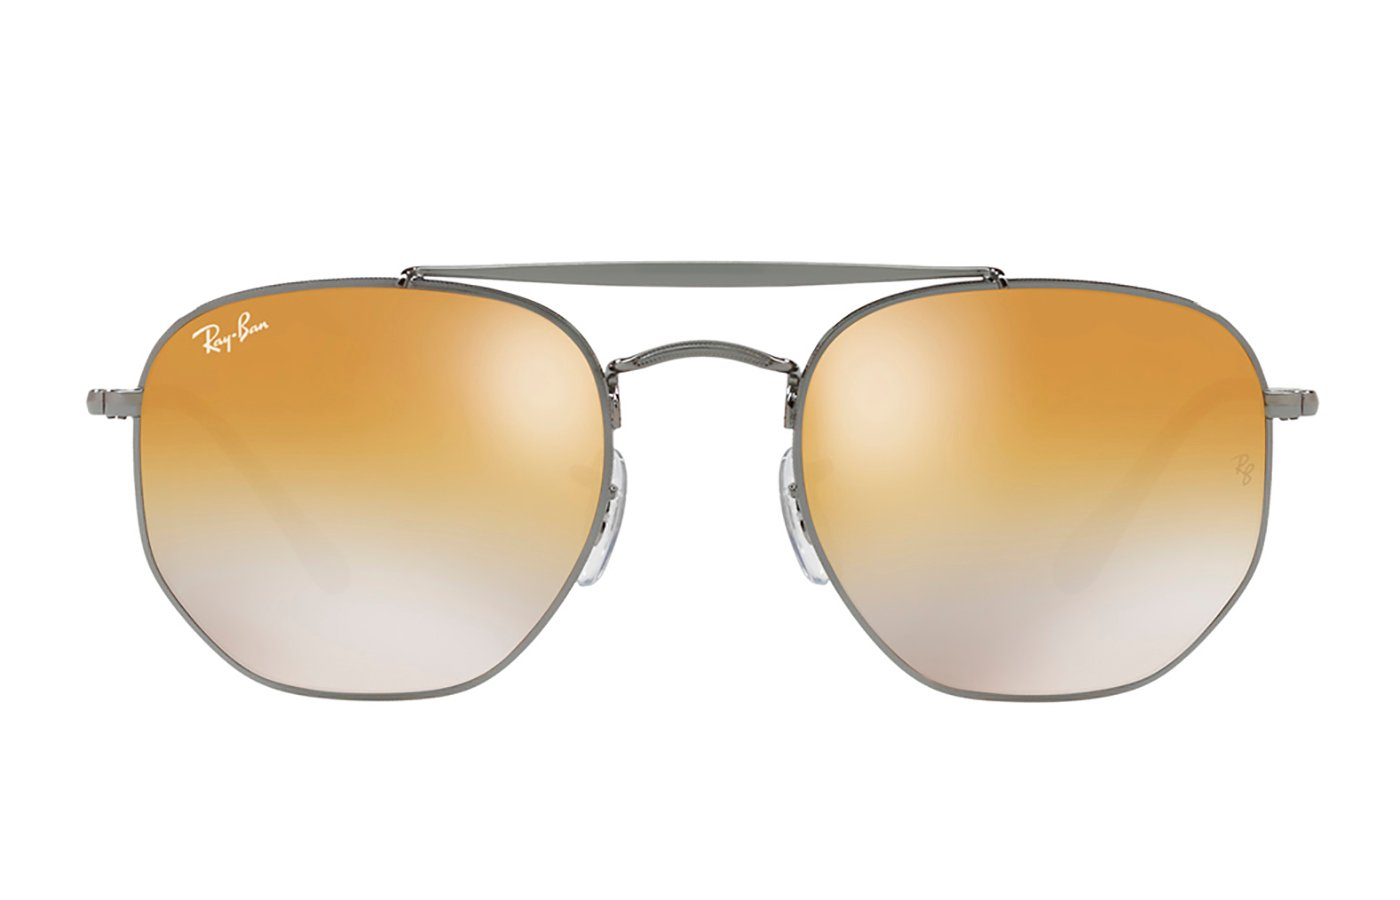 RAY-BAN THE MARSHAL GUNMETAL 0RB3648 51 004/I3